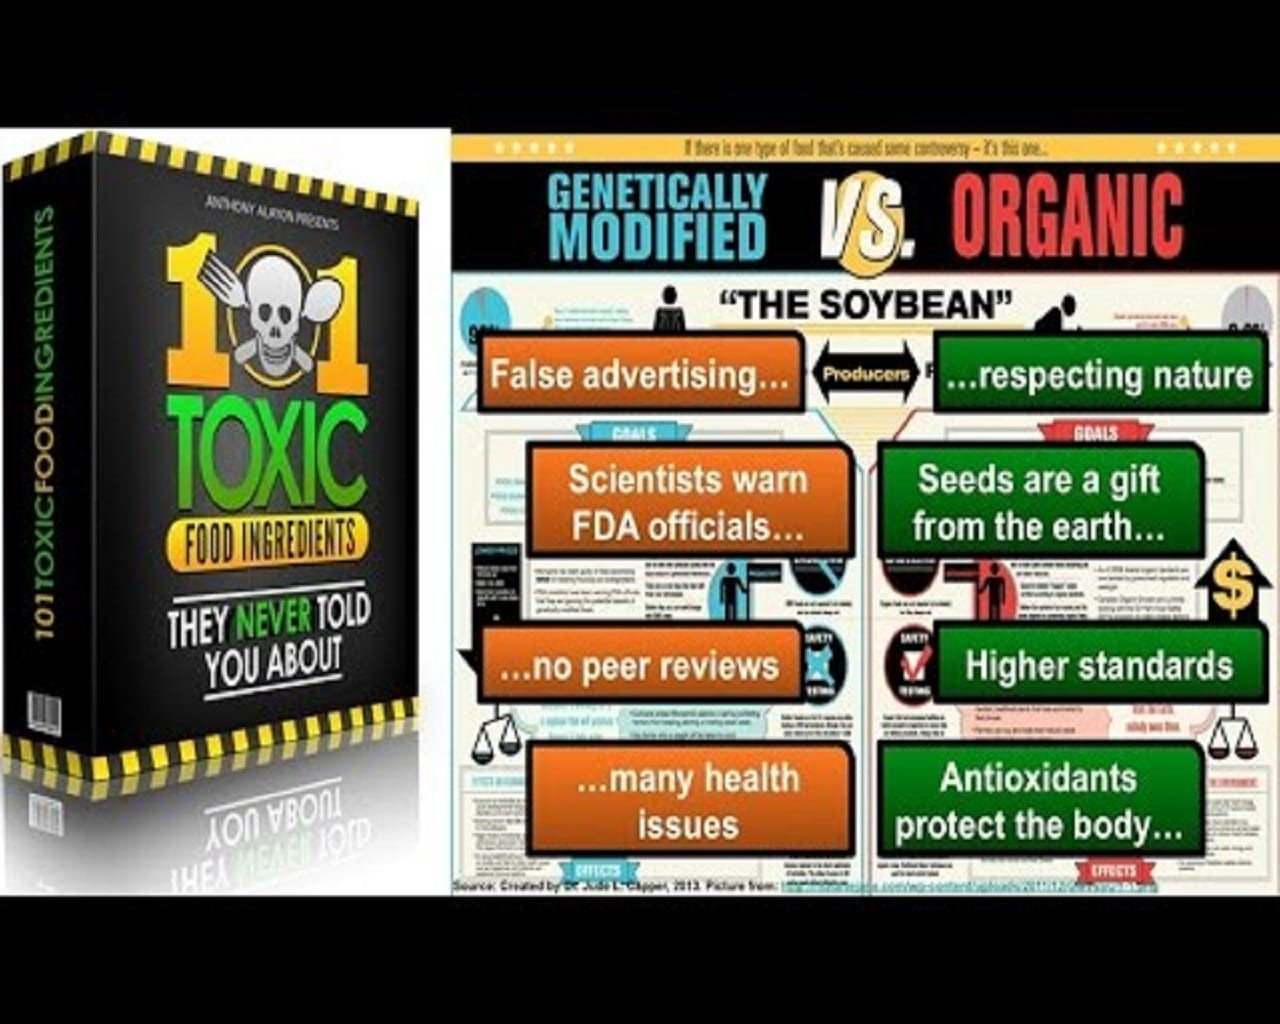 101 toxic food ingredients, can dogs eat raw potatoes, best vegetables for dogs, what foods are toxic to dogs, what not to feed dogs;